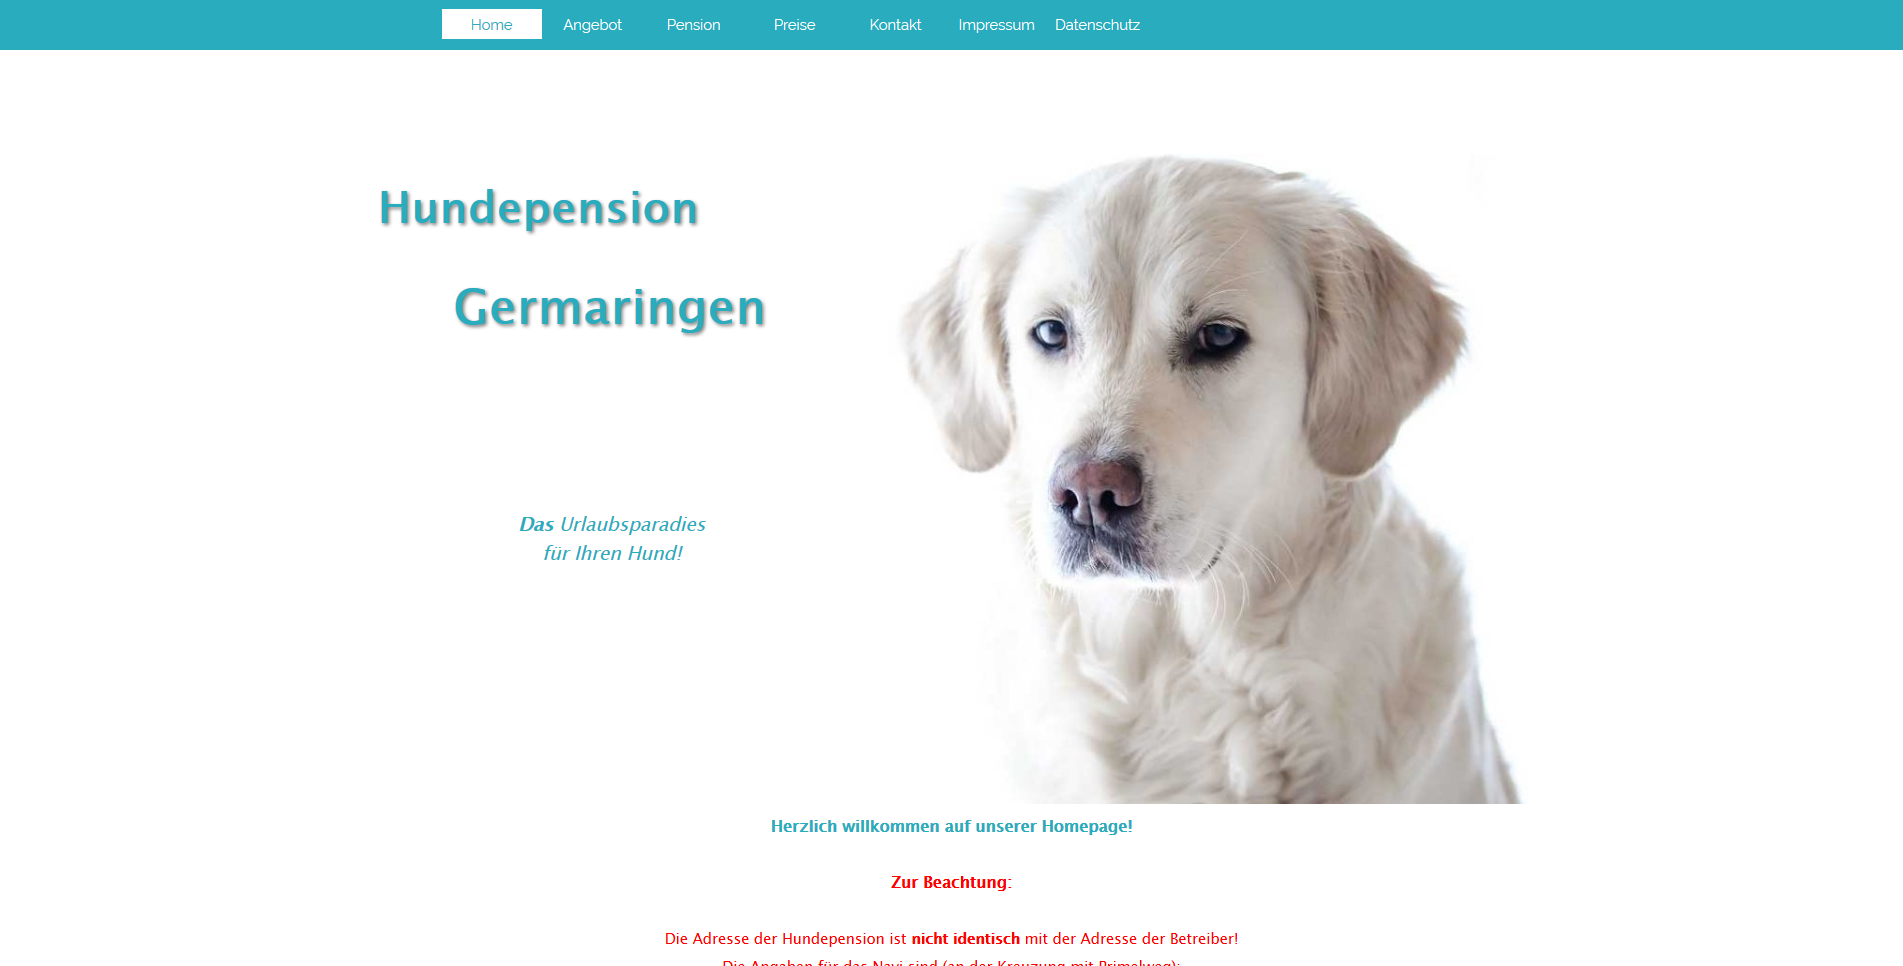 Hundepension Germaringen